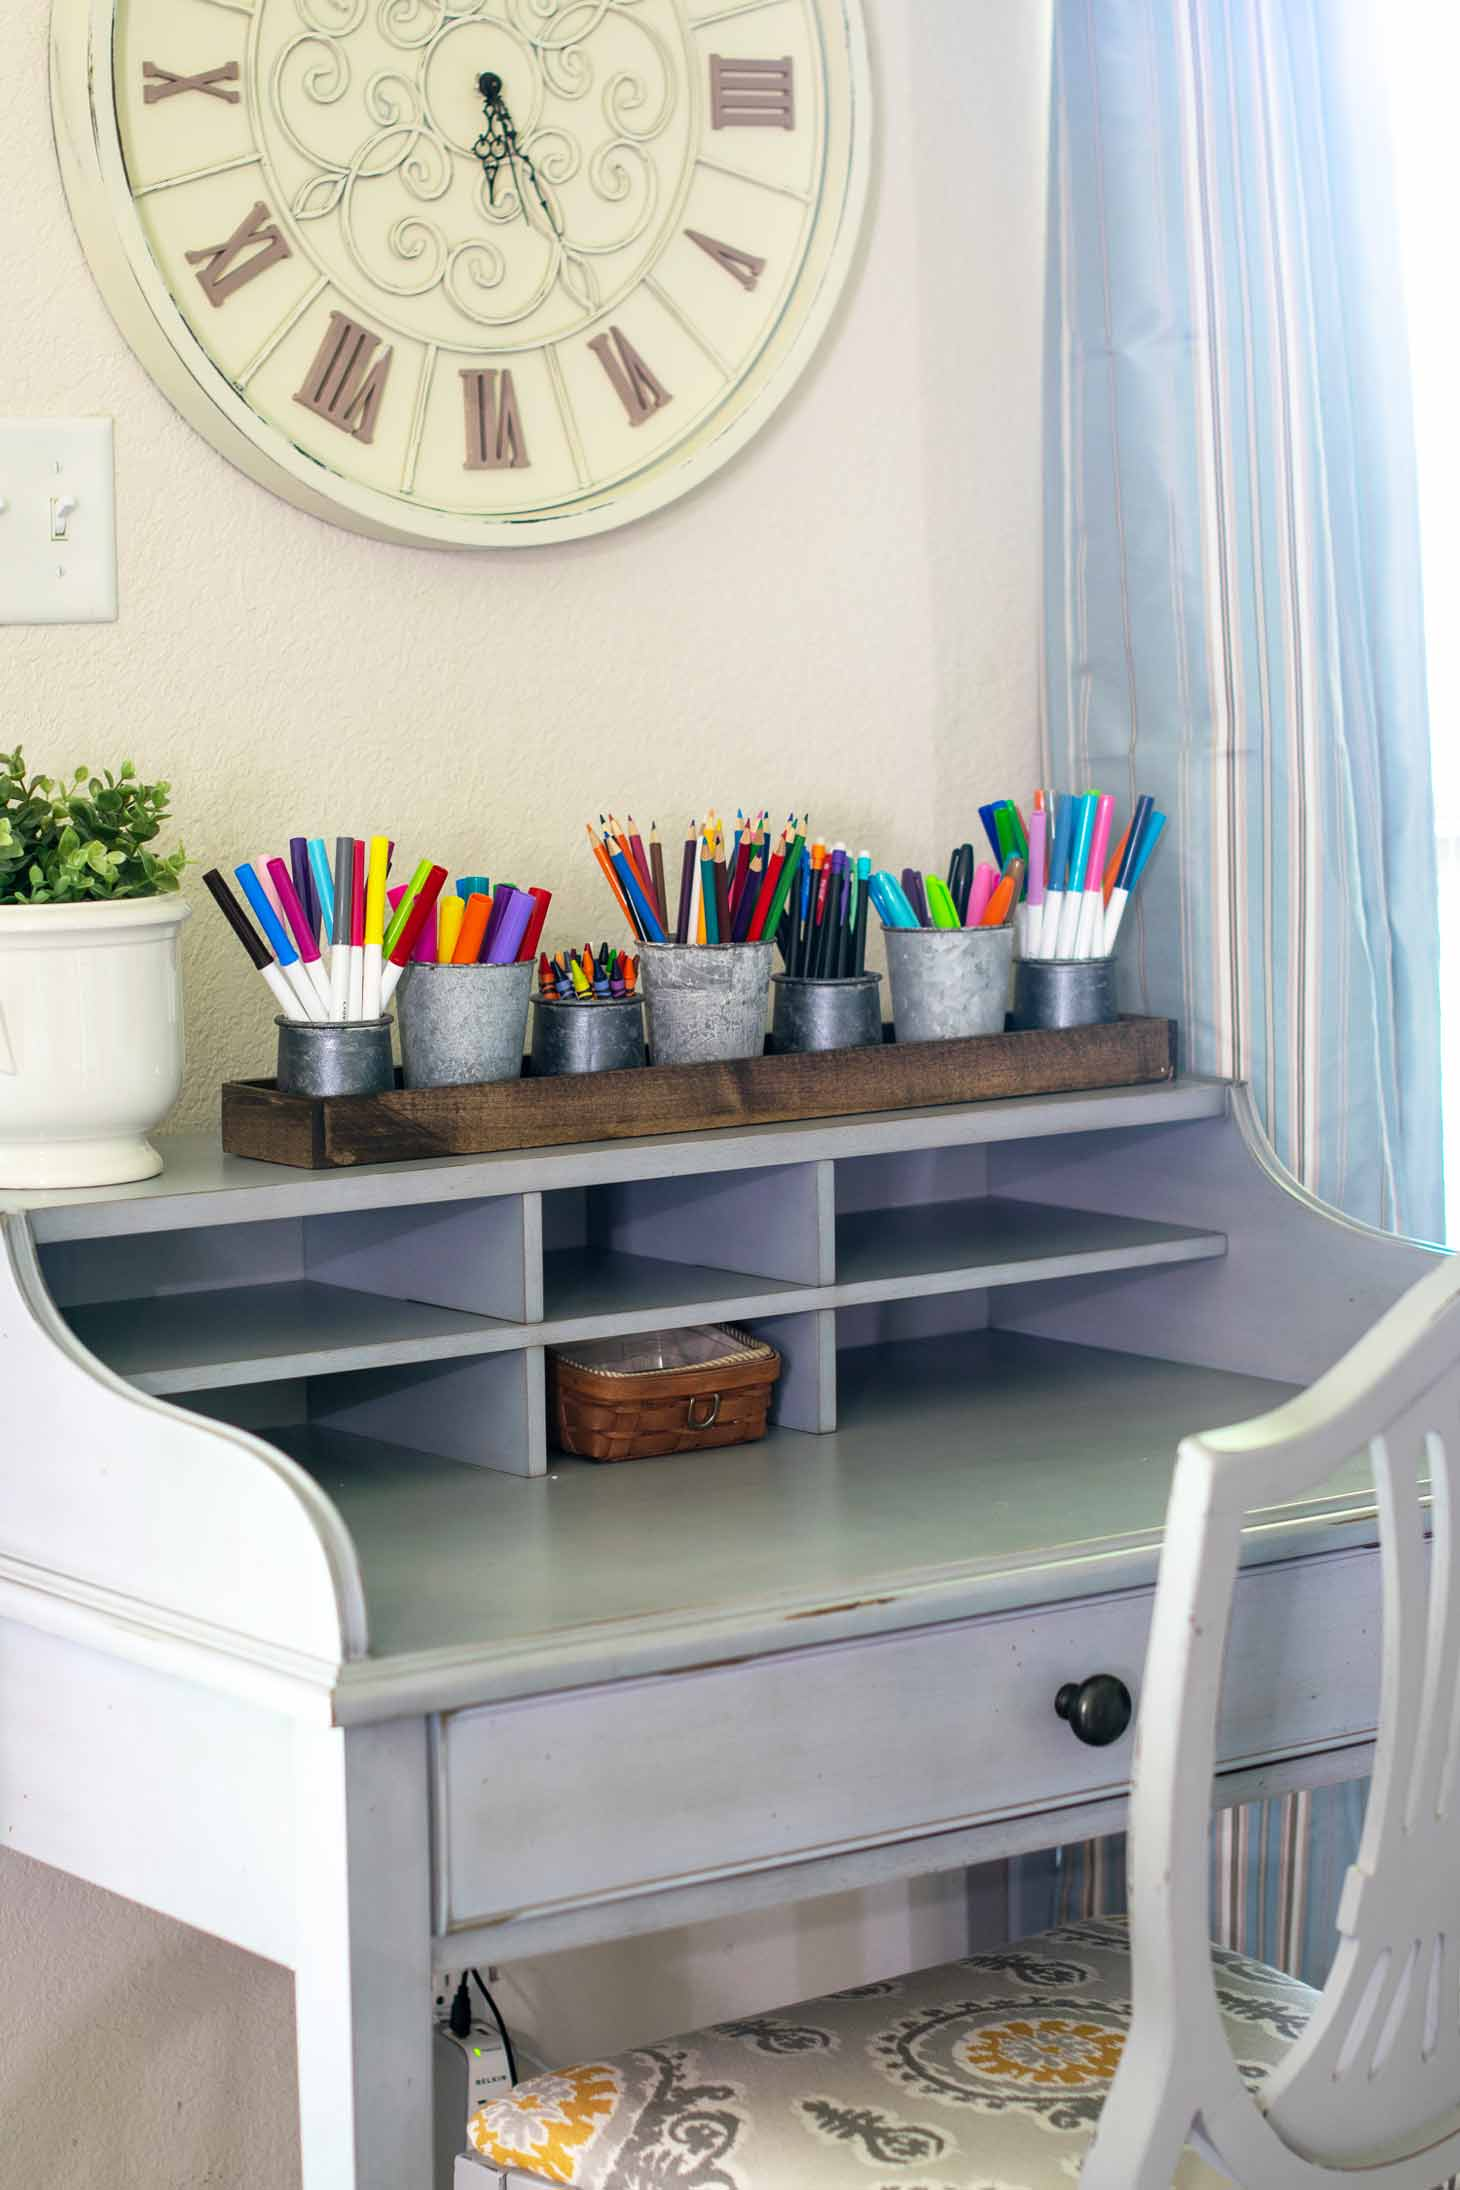 build a tray to hold art supplies